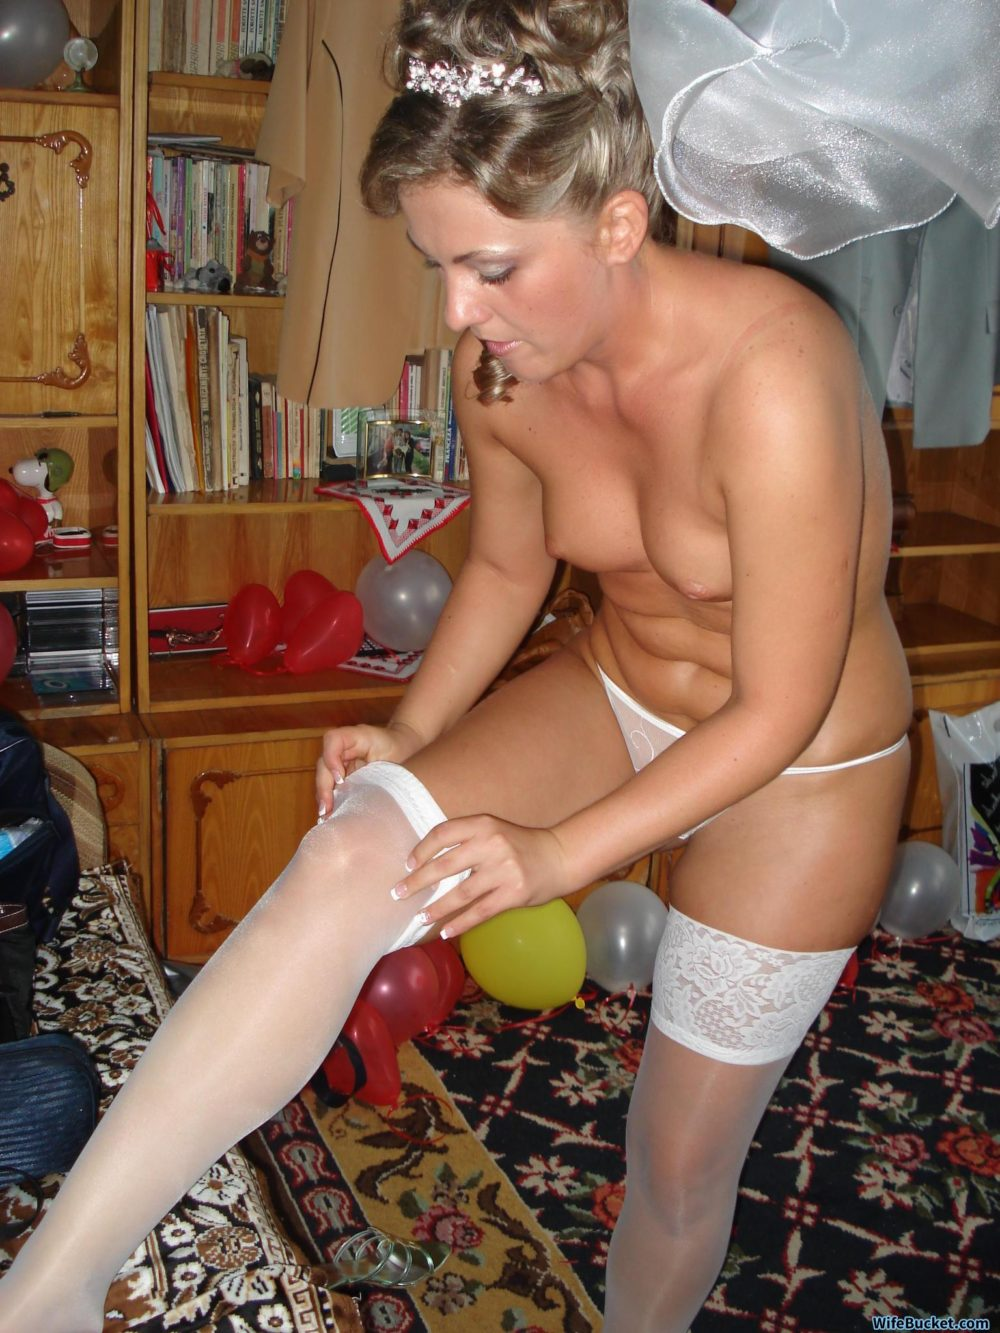 Accidental Fuck just married – wifebucket | offical milf blog